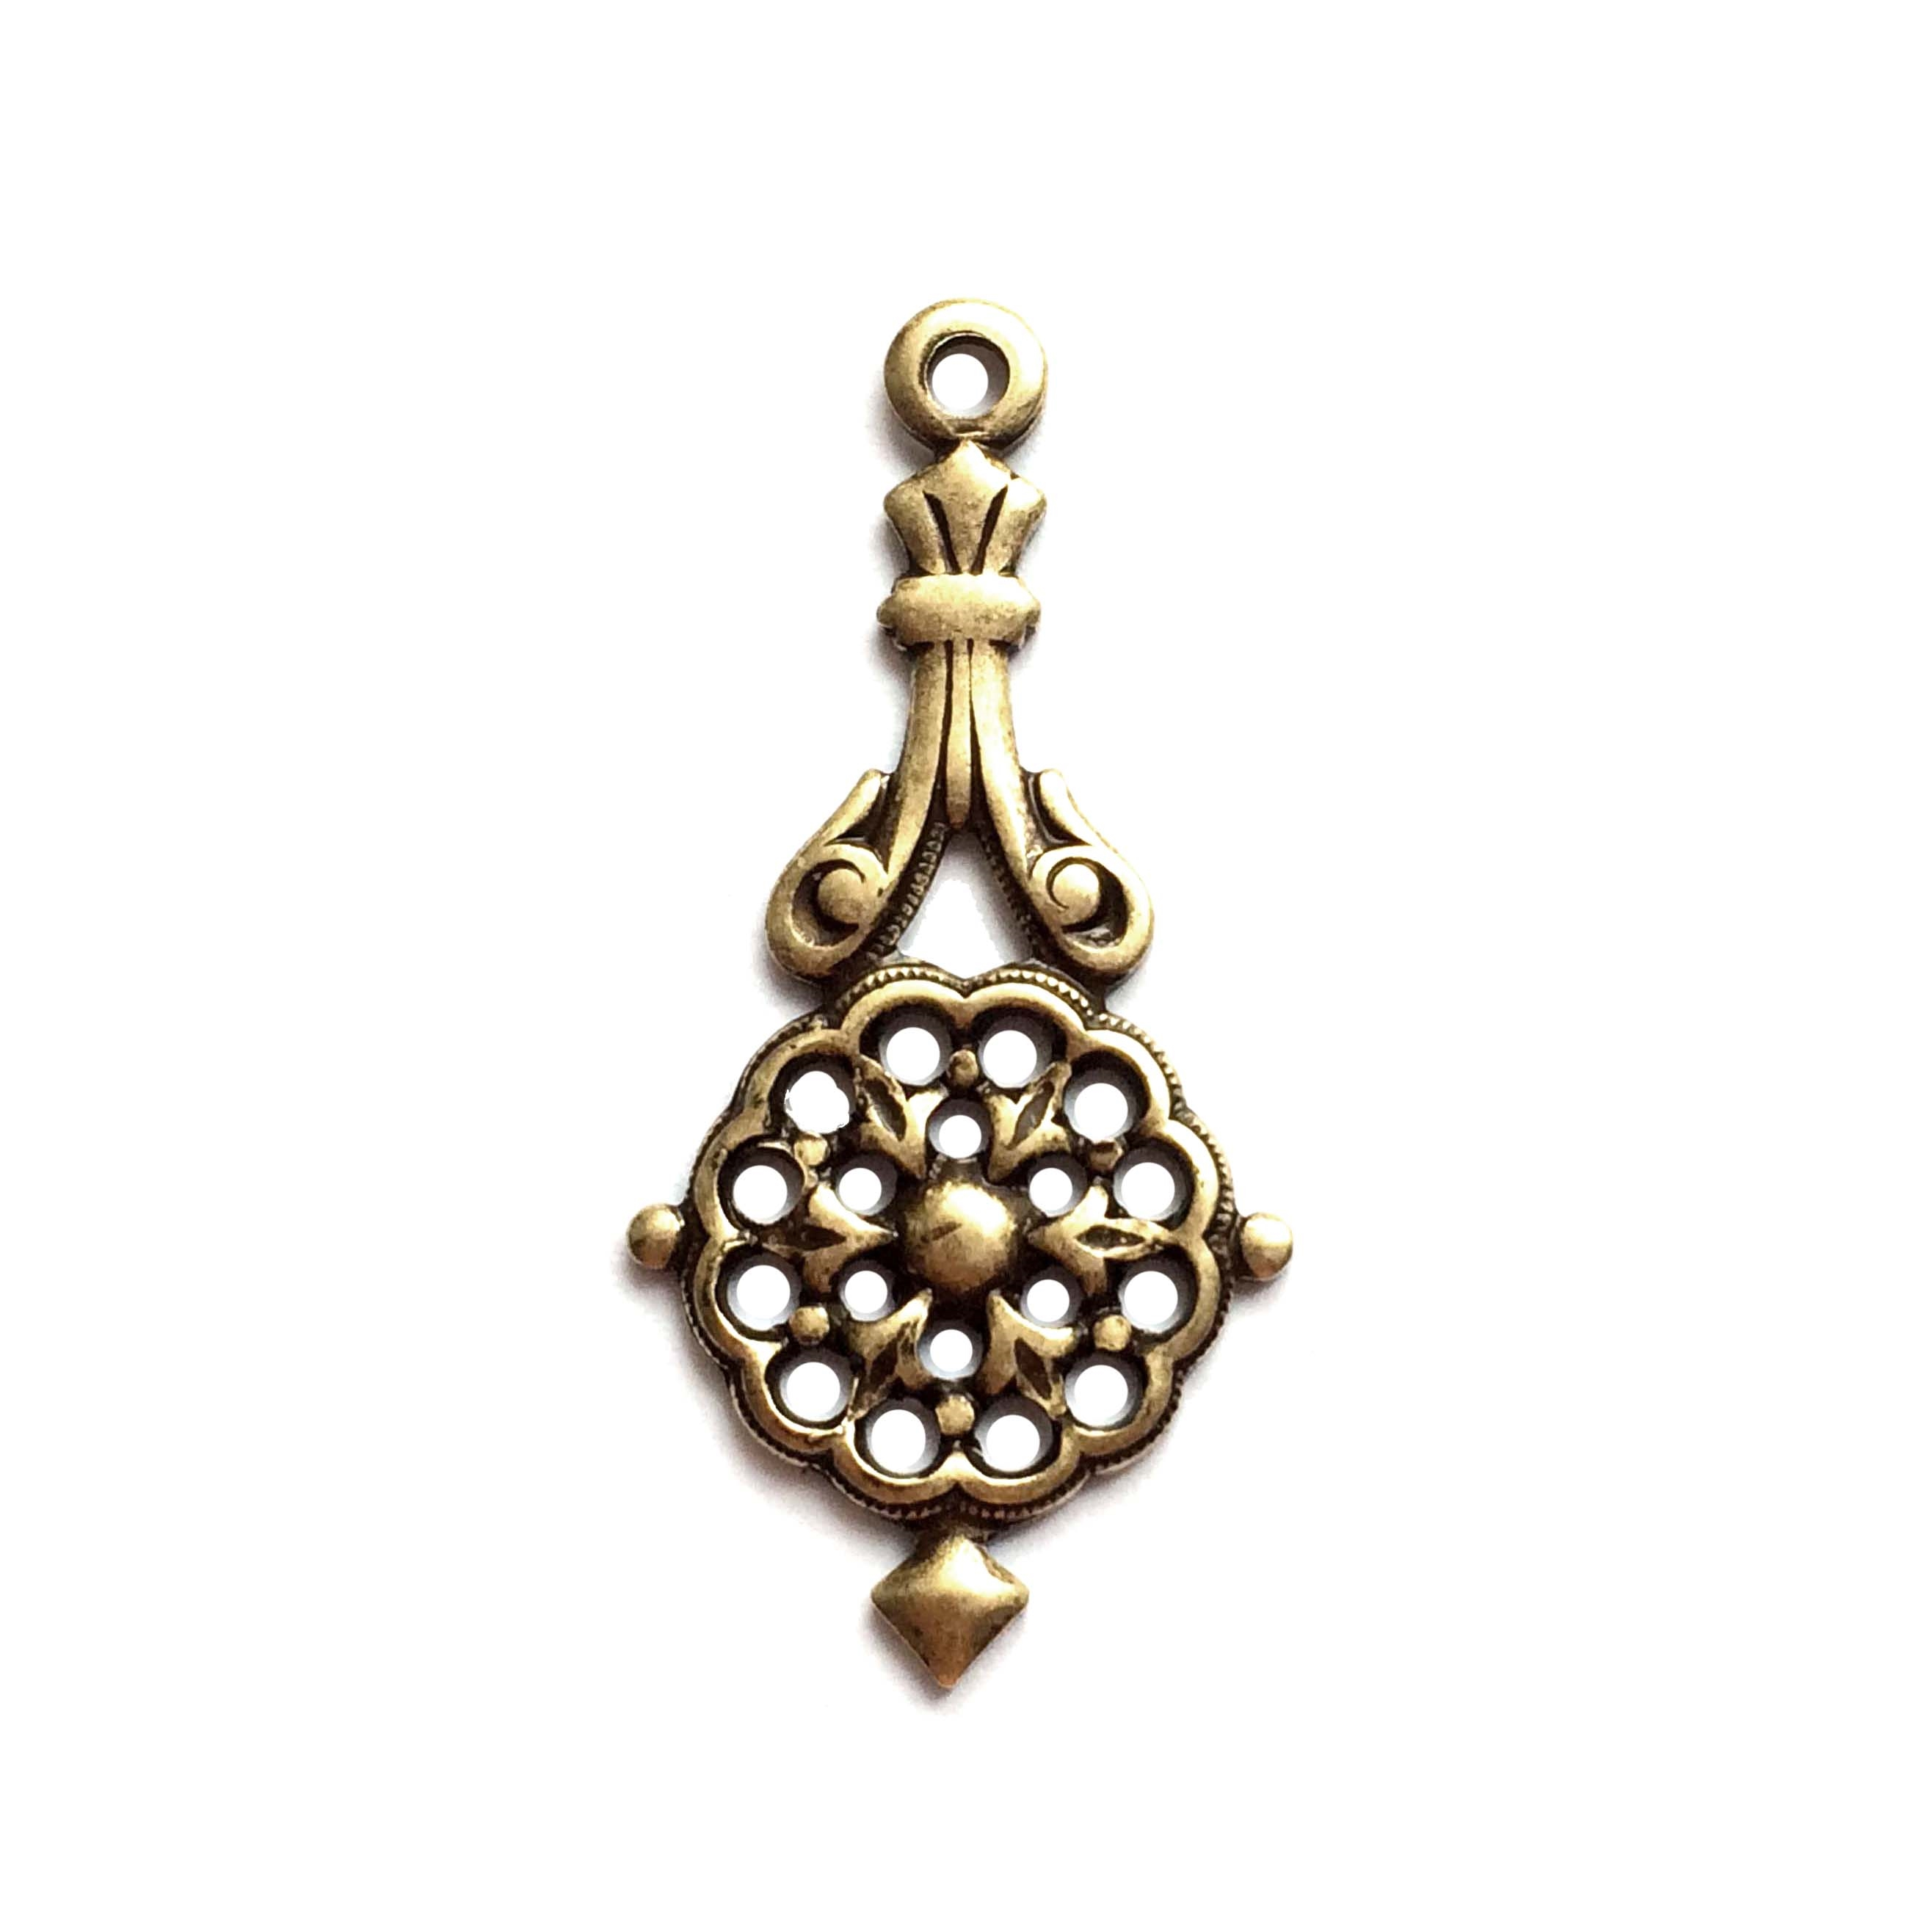 filigree ear drop, pendant, drop, filigree, brass ox, antique brass, ear drop, brass stamping, us made, nickel free, victorian style, stamping, filigree, 31x17mm, brass, jewelry making, jewelry findings, jewelry supplies, vintage supplies, 02891